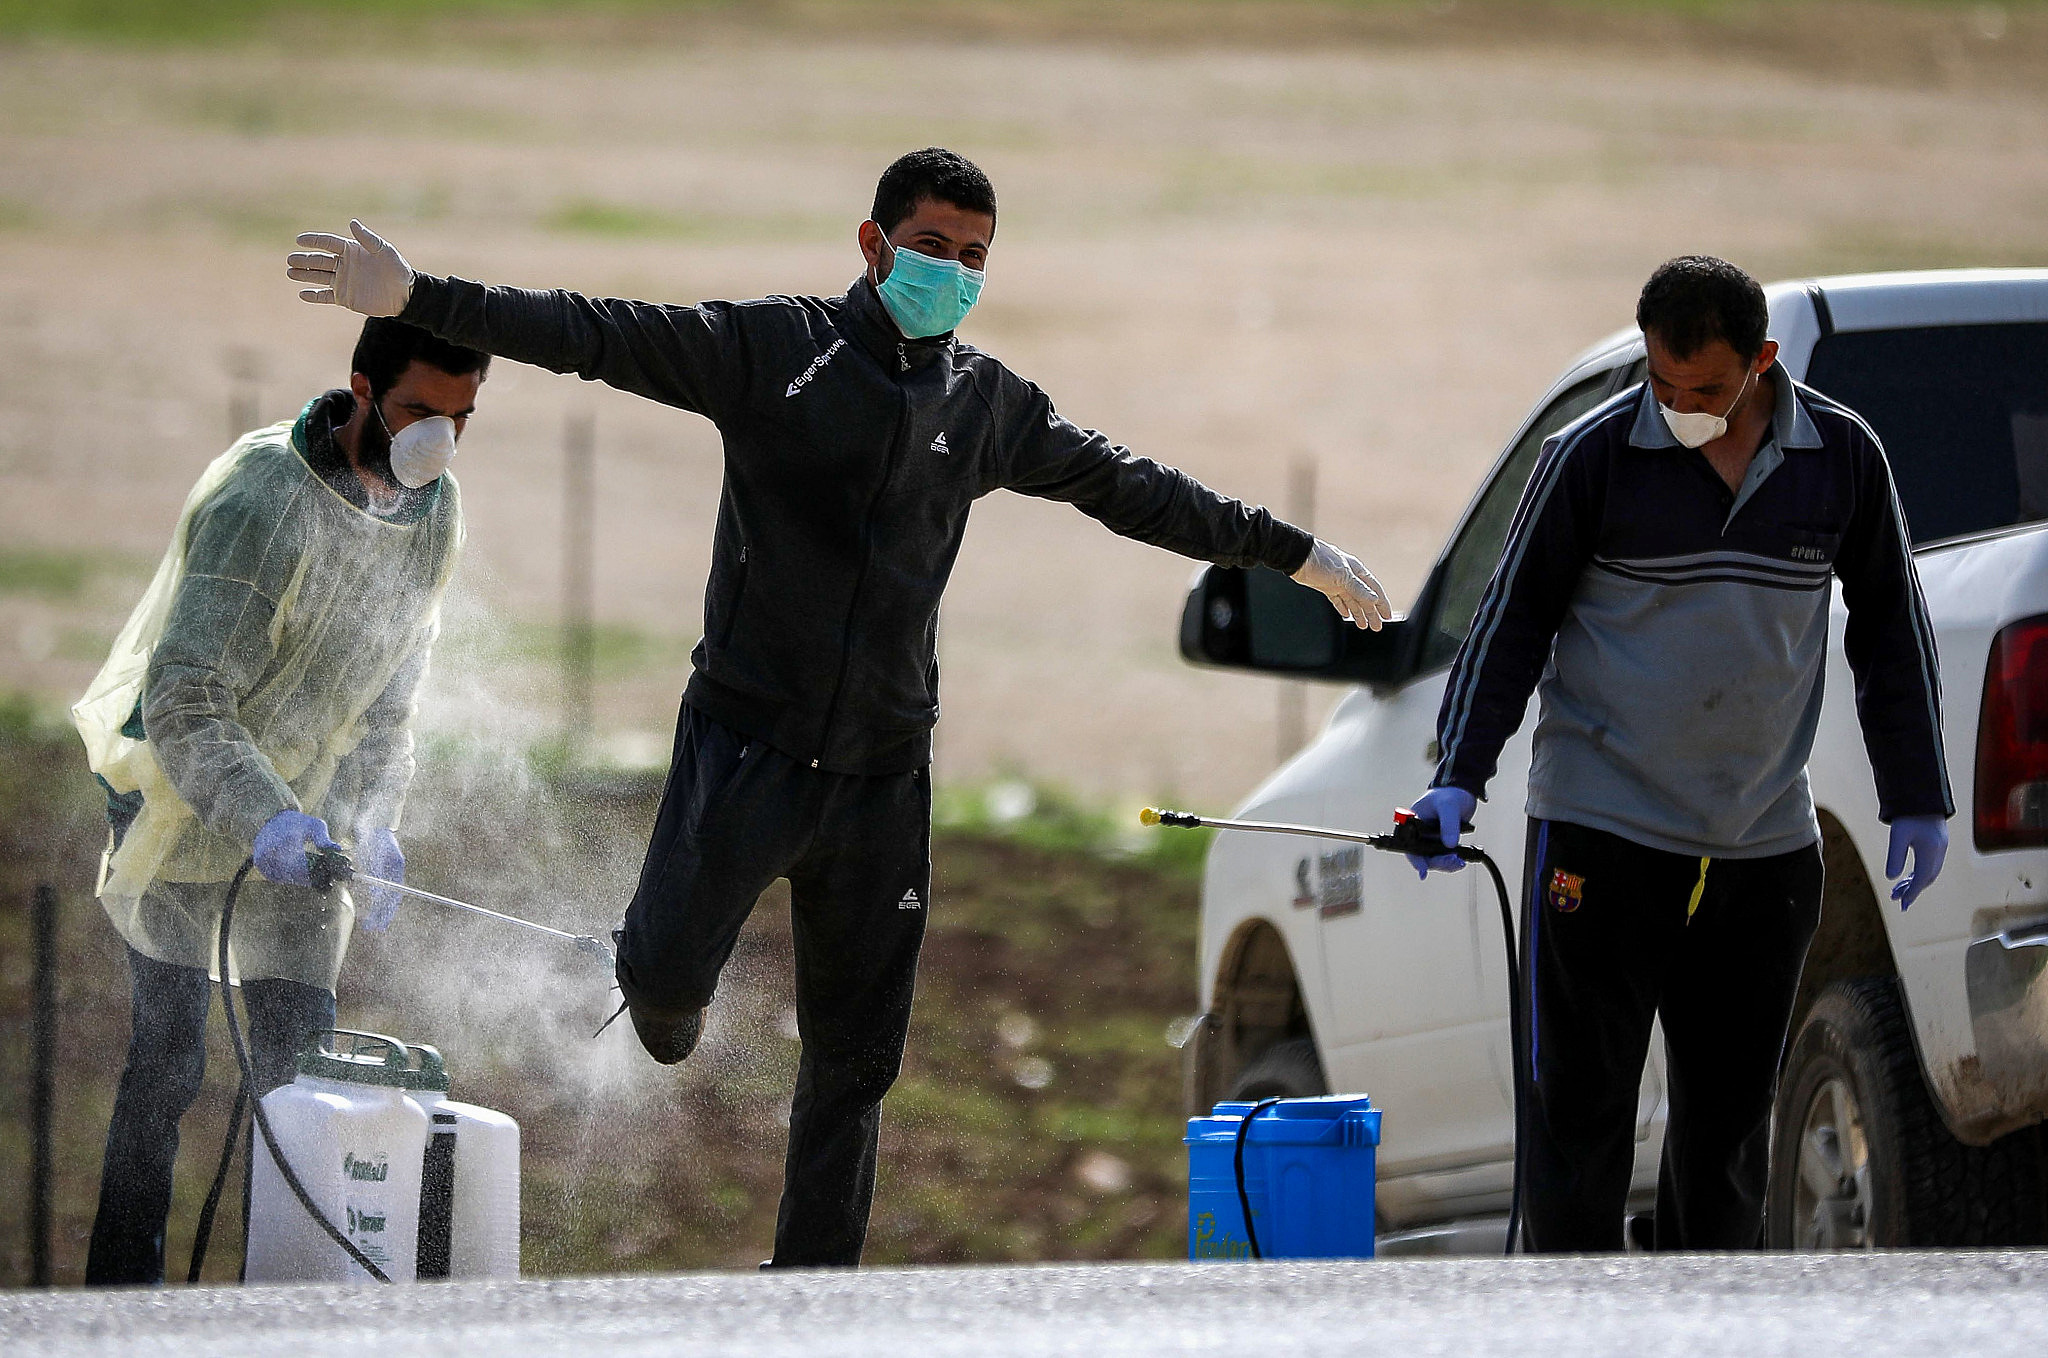 Palestinian health workers disinfectant Palestinian laborers as they cross back from Israel to the West Bank at a checkpoint in Tarqumiya on March 27, 2020. (Wisam Hashlamoun/Flash90)